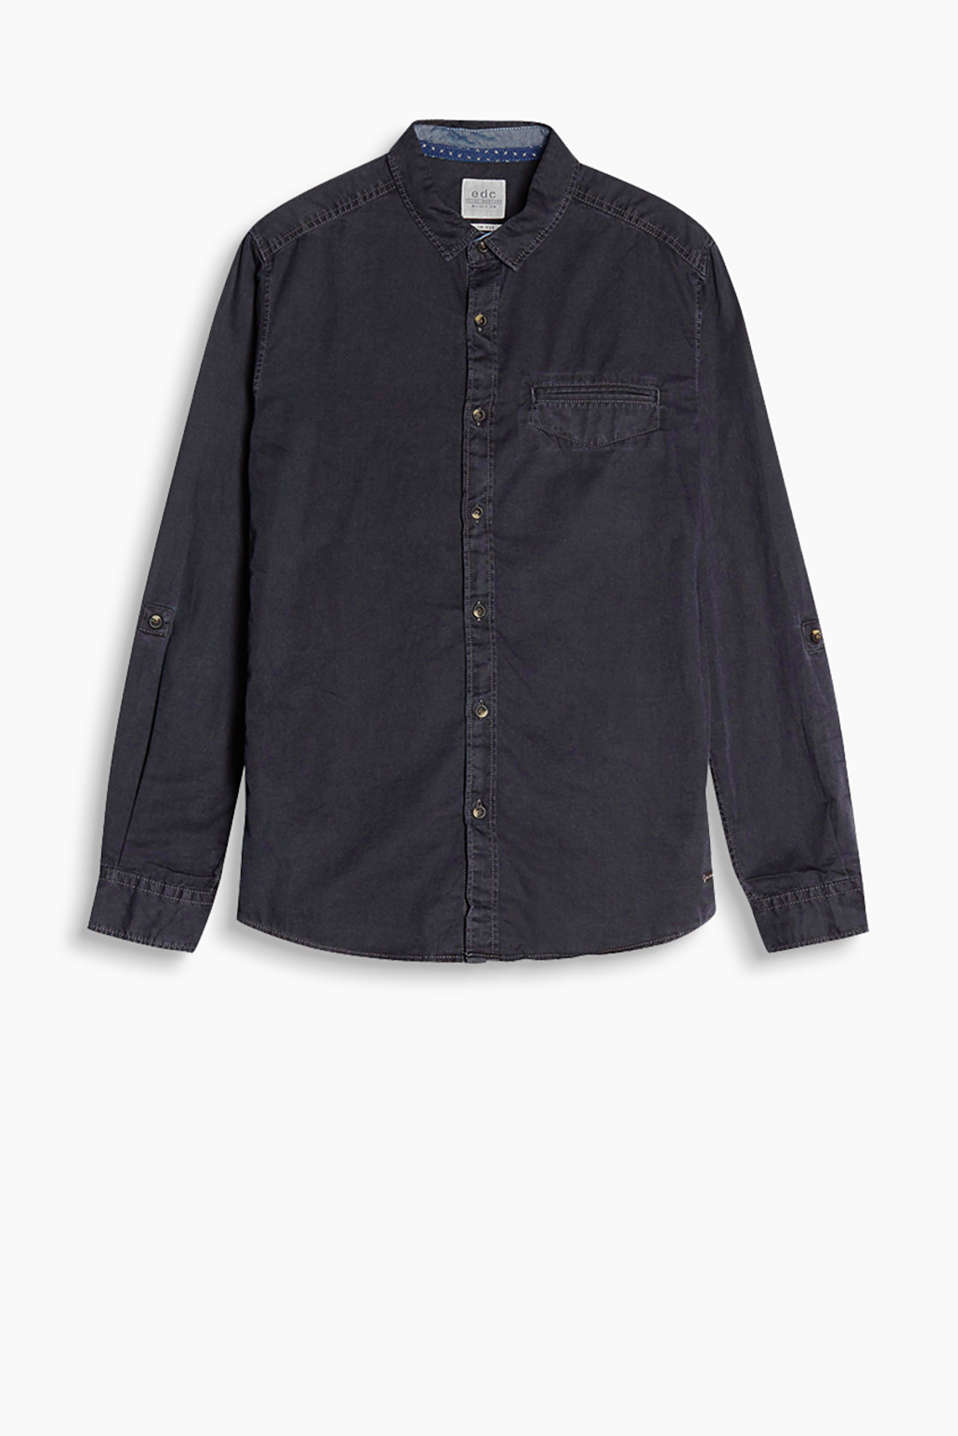 With a welt pocket on the chest, turn-up sleeves and casual garment-washed effects: pure cotton shirt